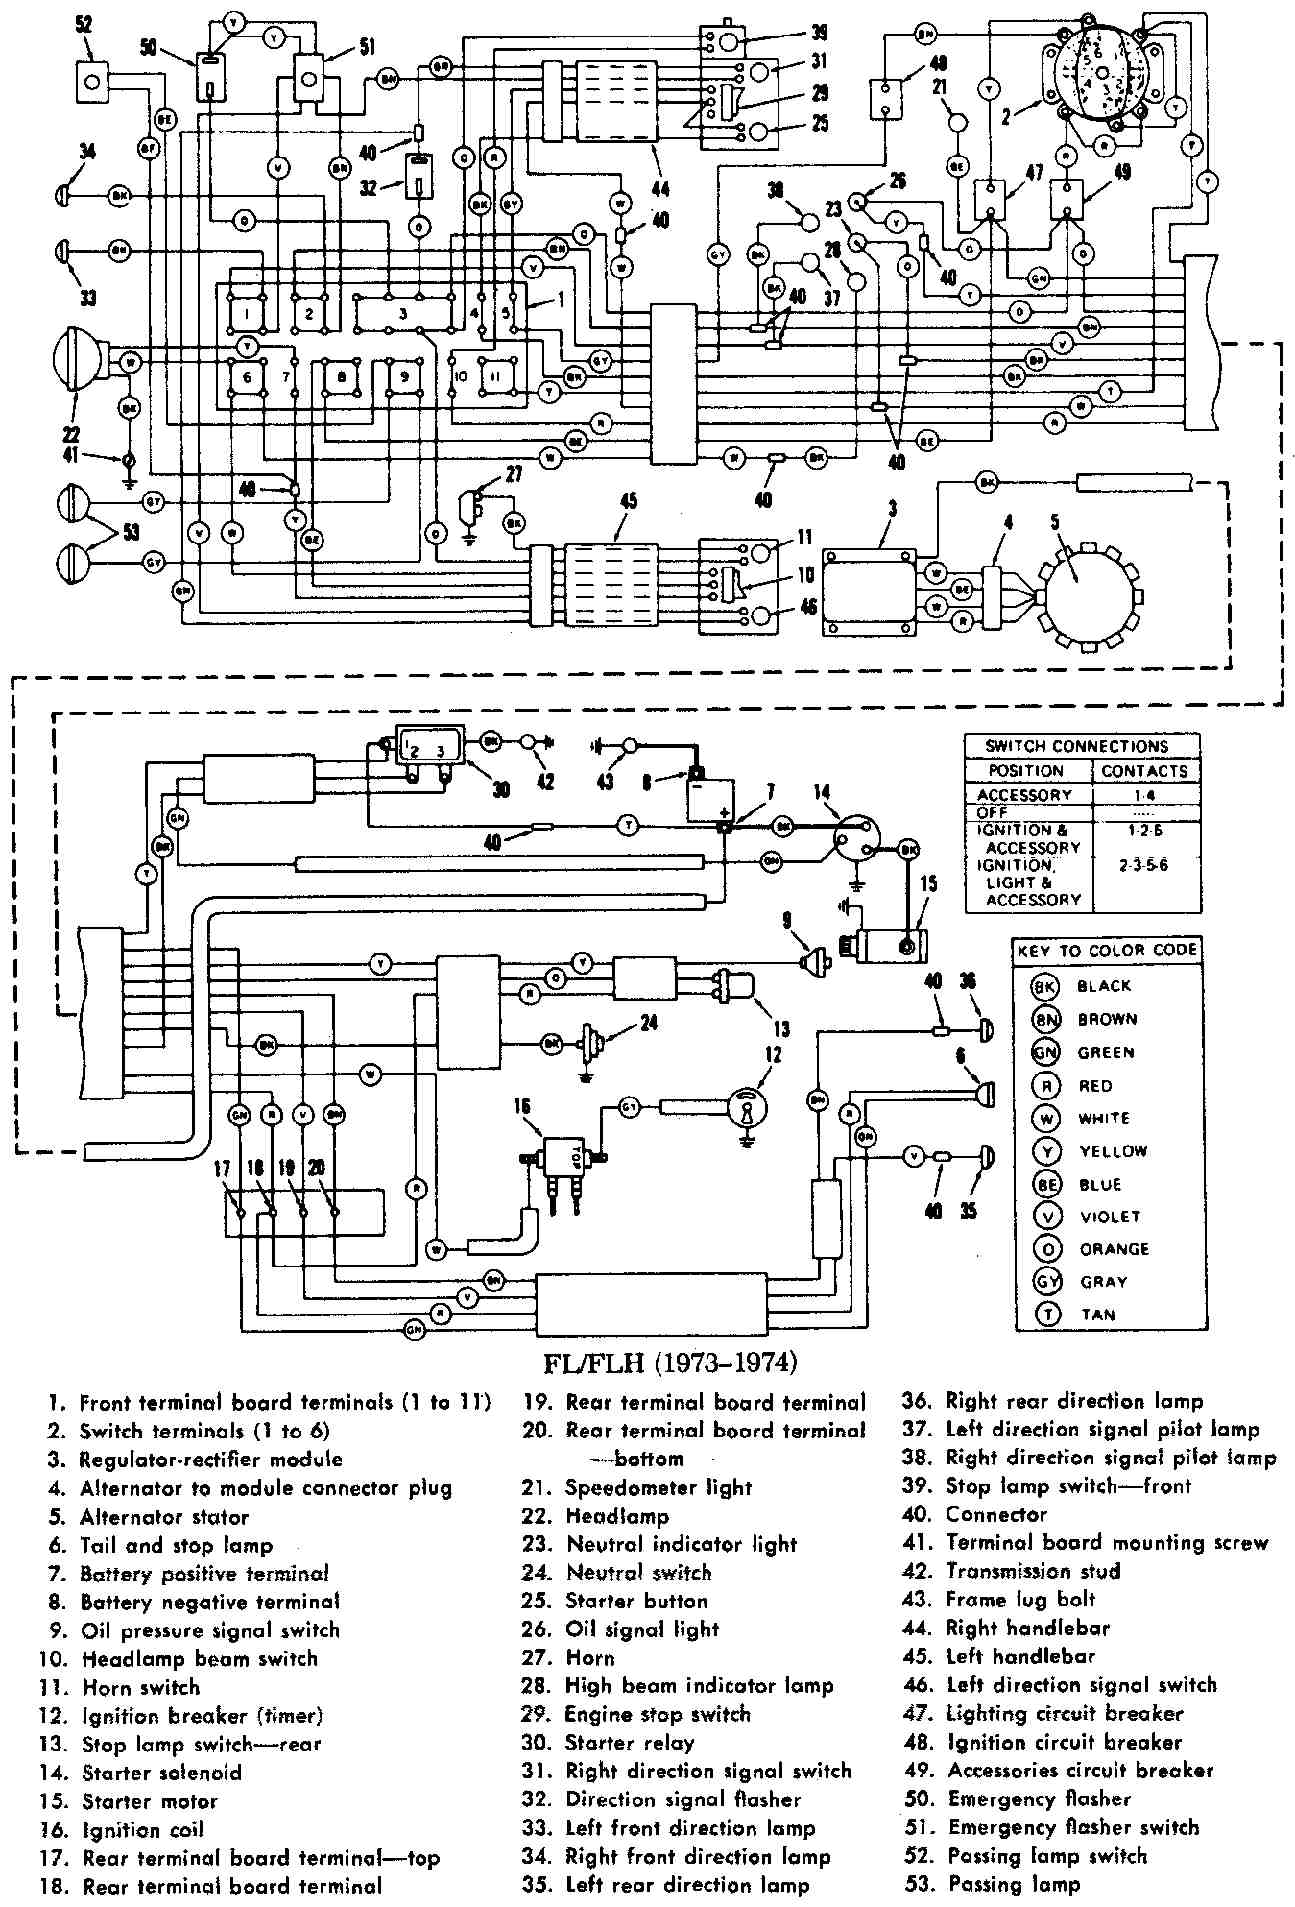 1974 Mustang Fuse Panel Diagram Wiring Library 1968 Box Amc Amx Starter Pontiac Fiero